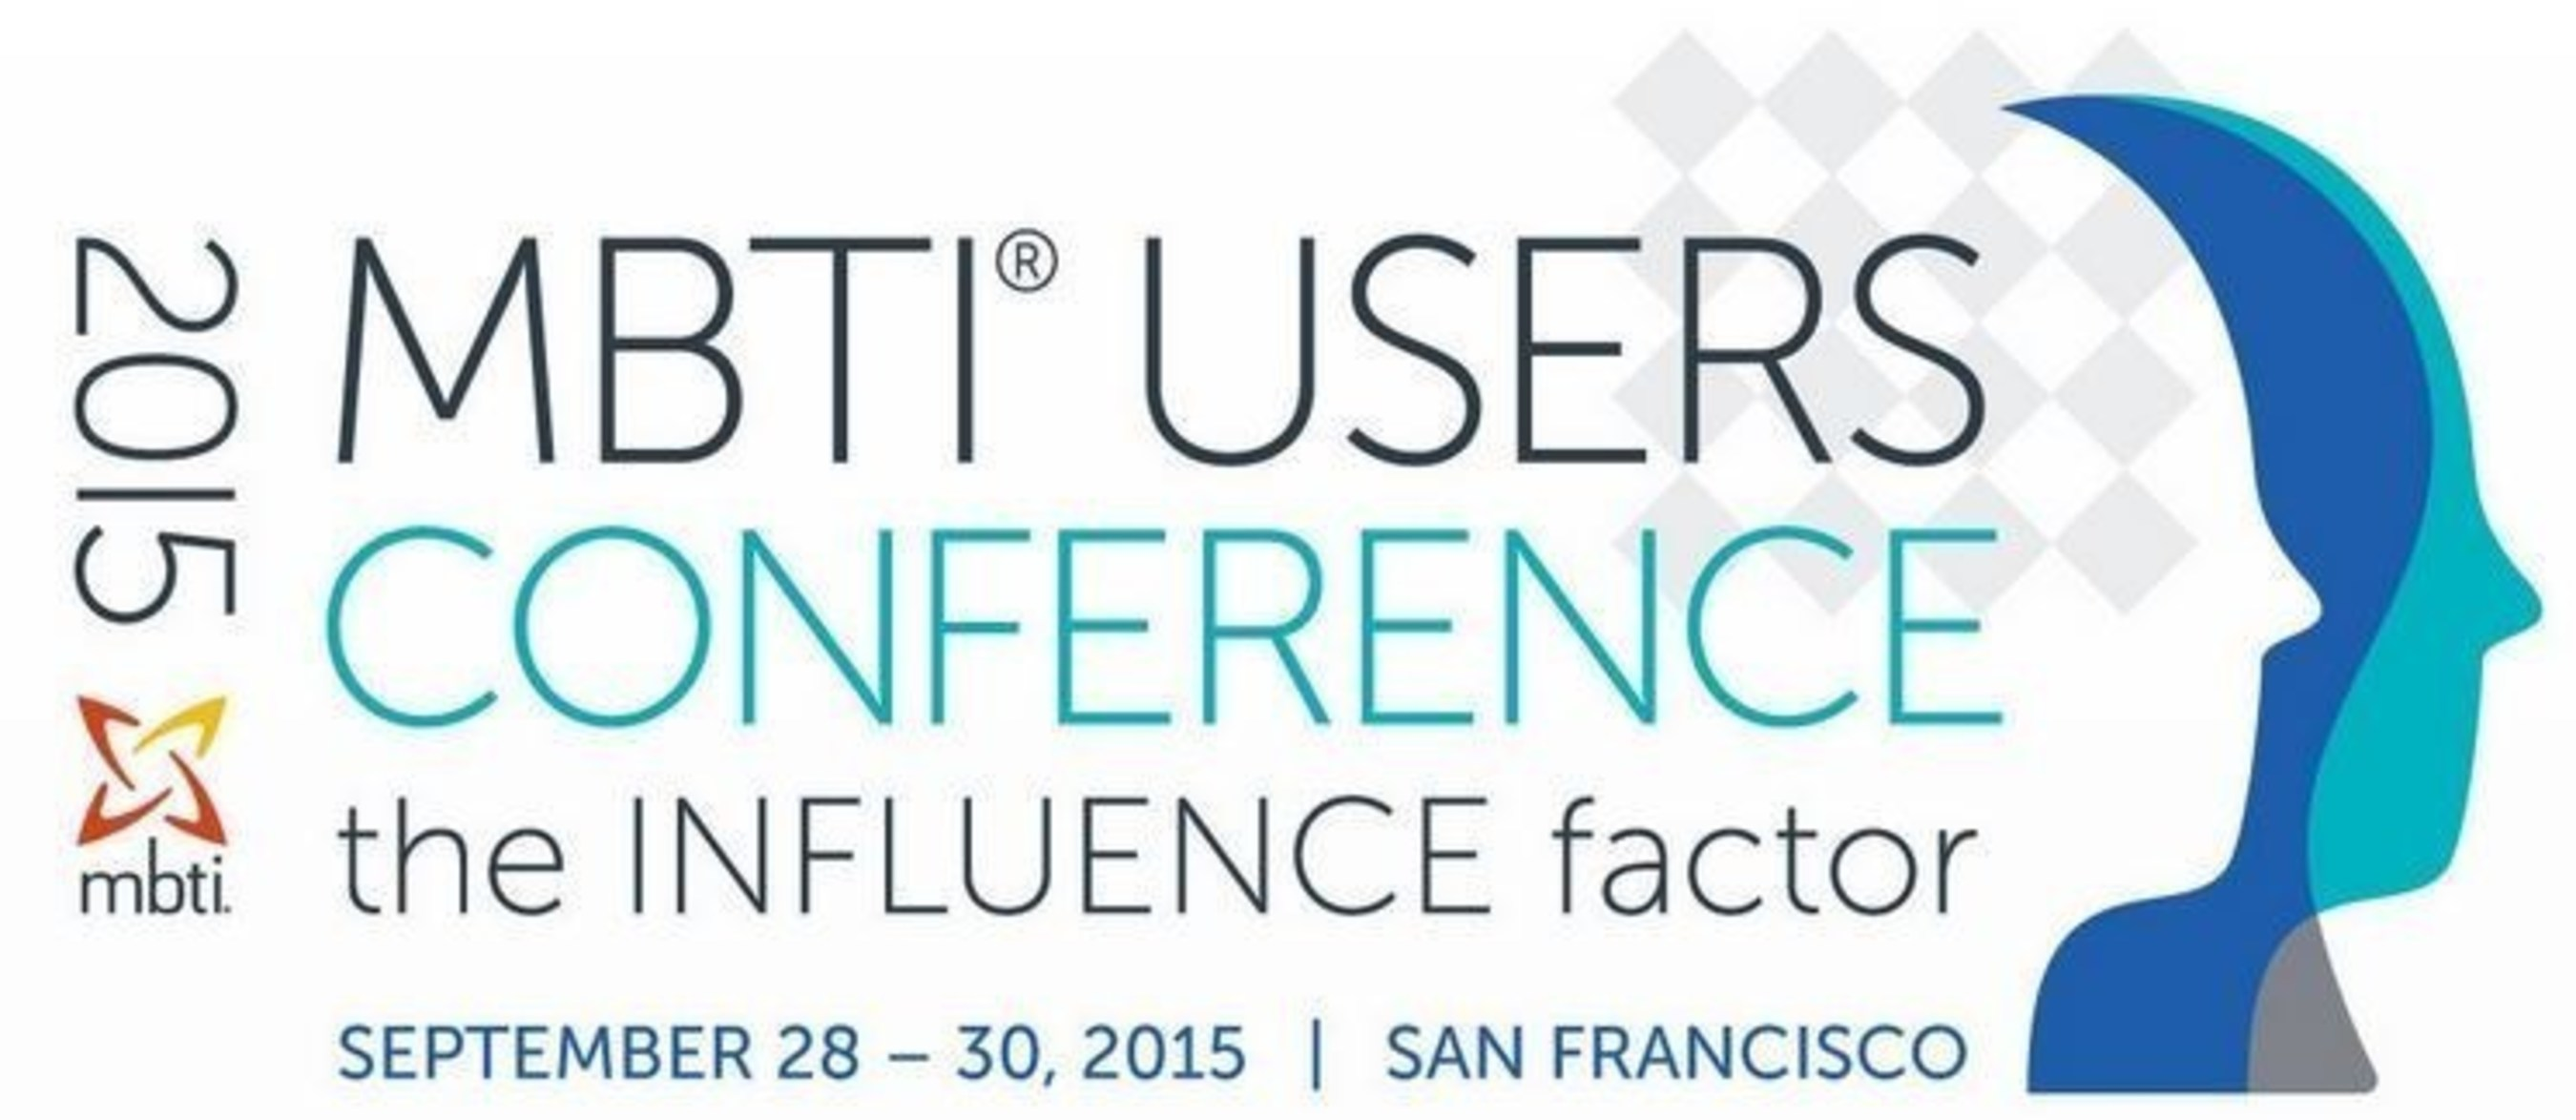 CPP Hosts 2015 MBTI® Users Conference in San Francisco, Sept. 28-30